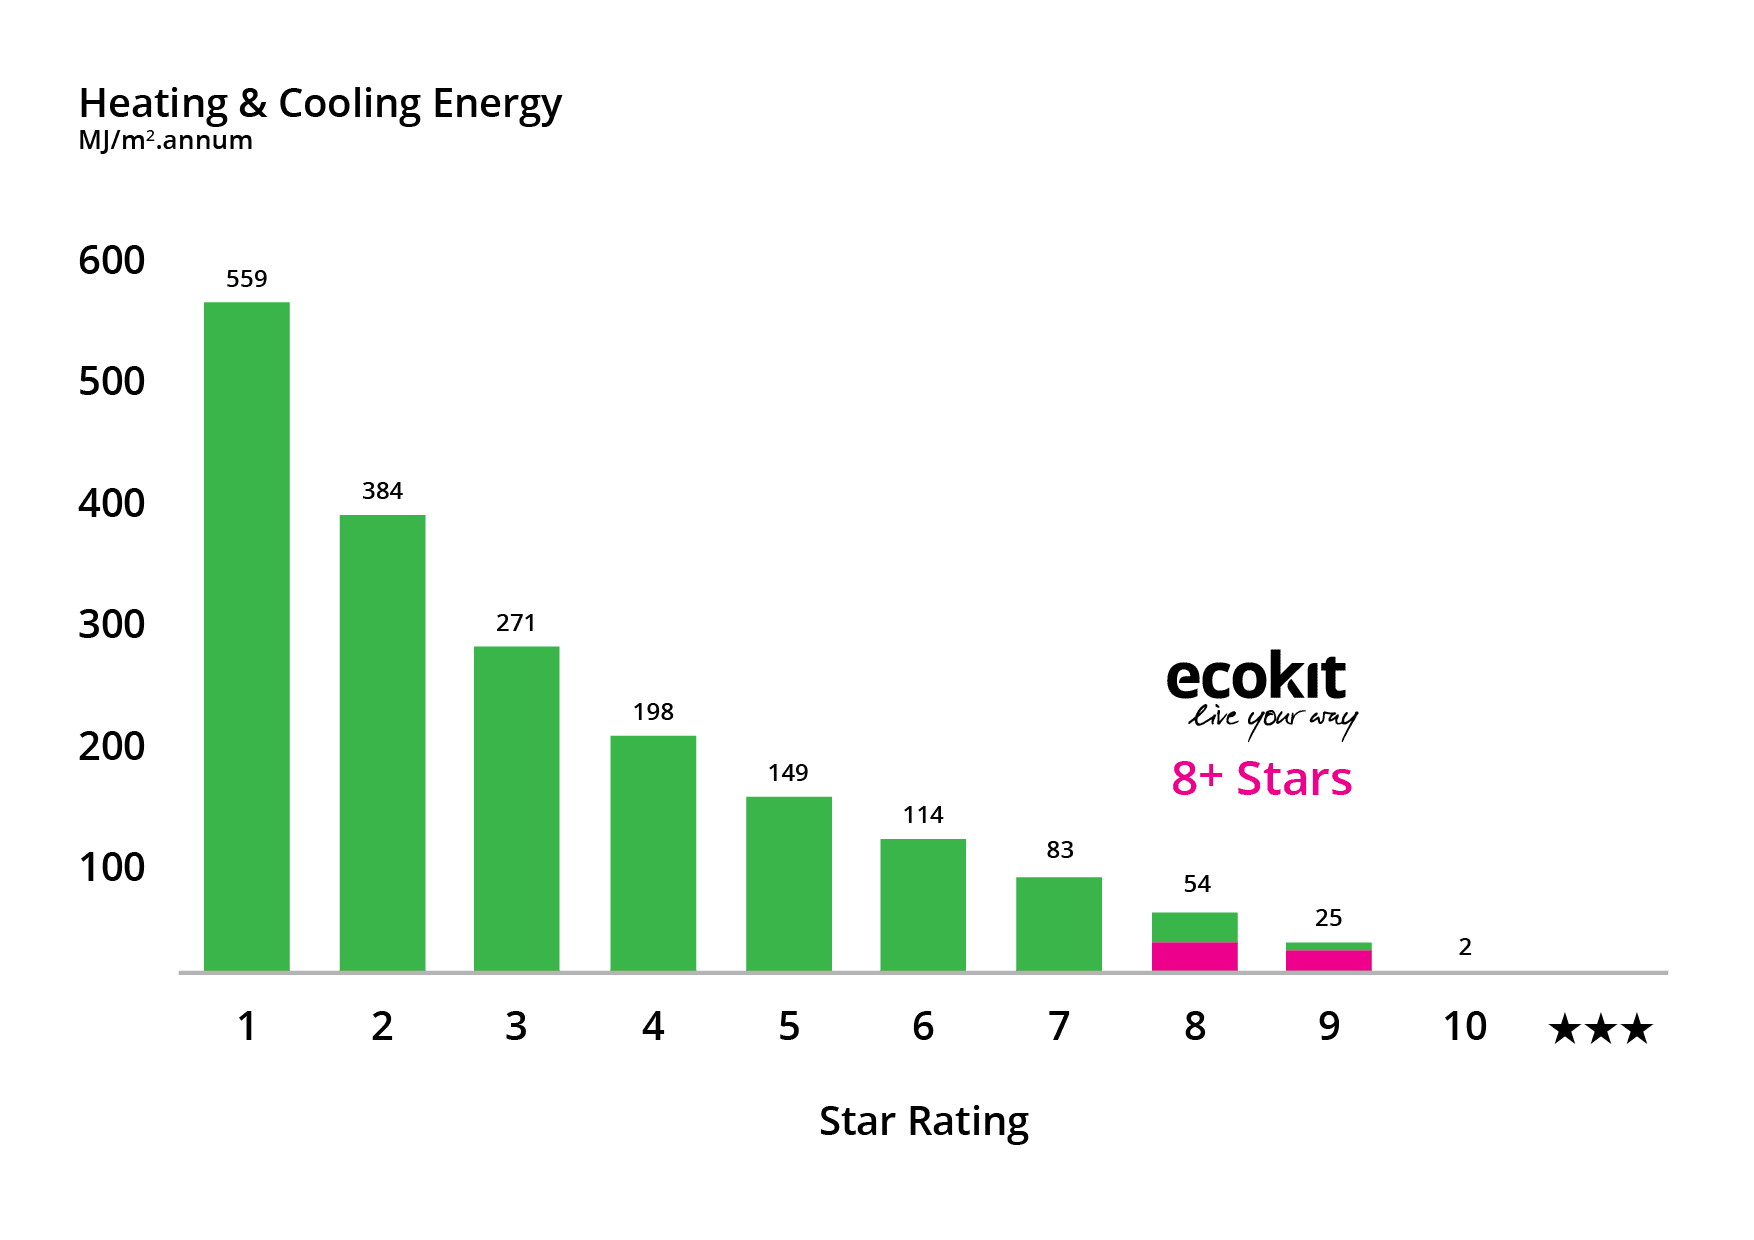 NatHERS stars rating showing ecokit among the top houses with more than 8 stars r-rating.